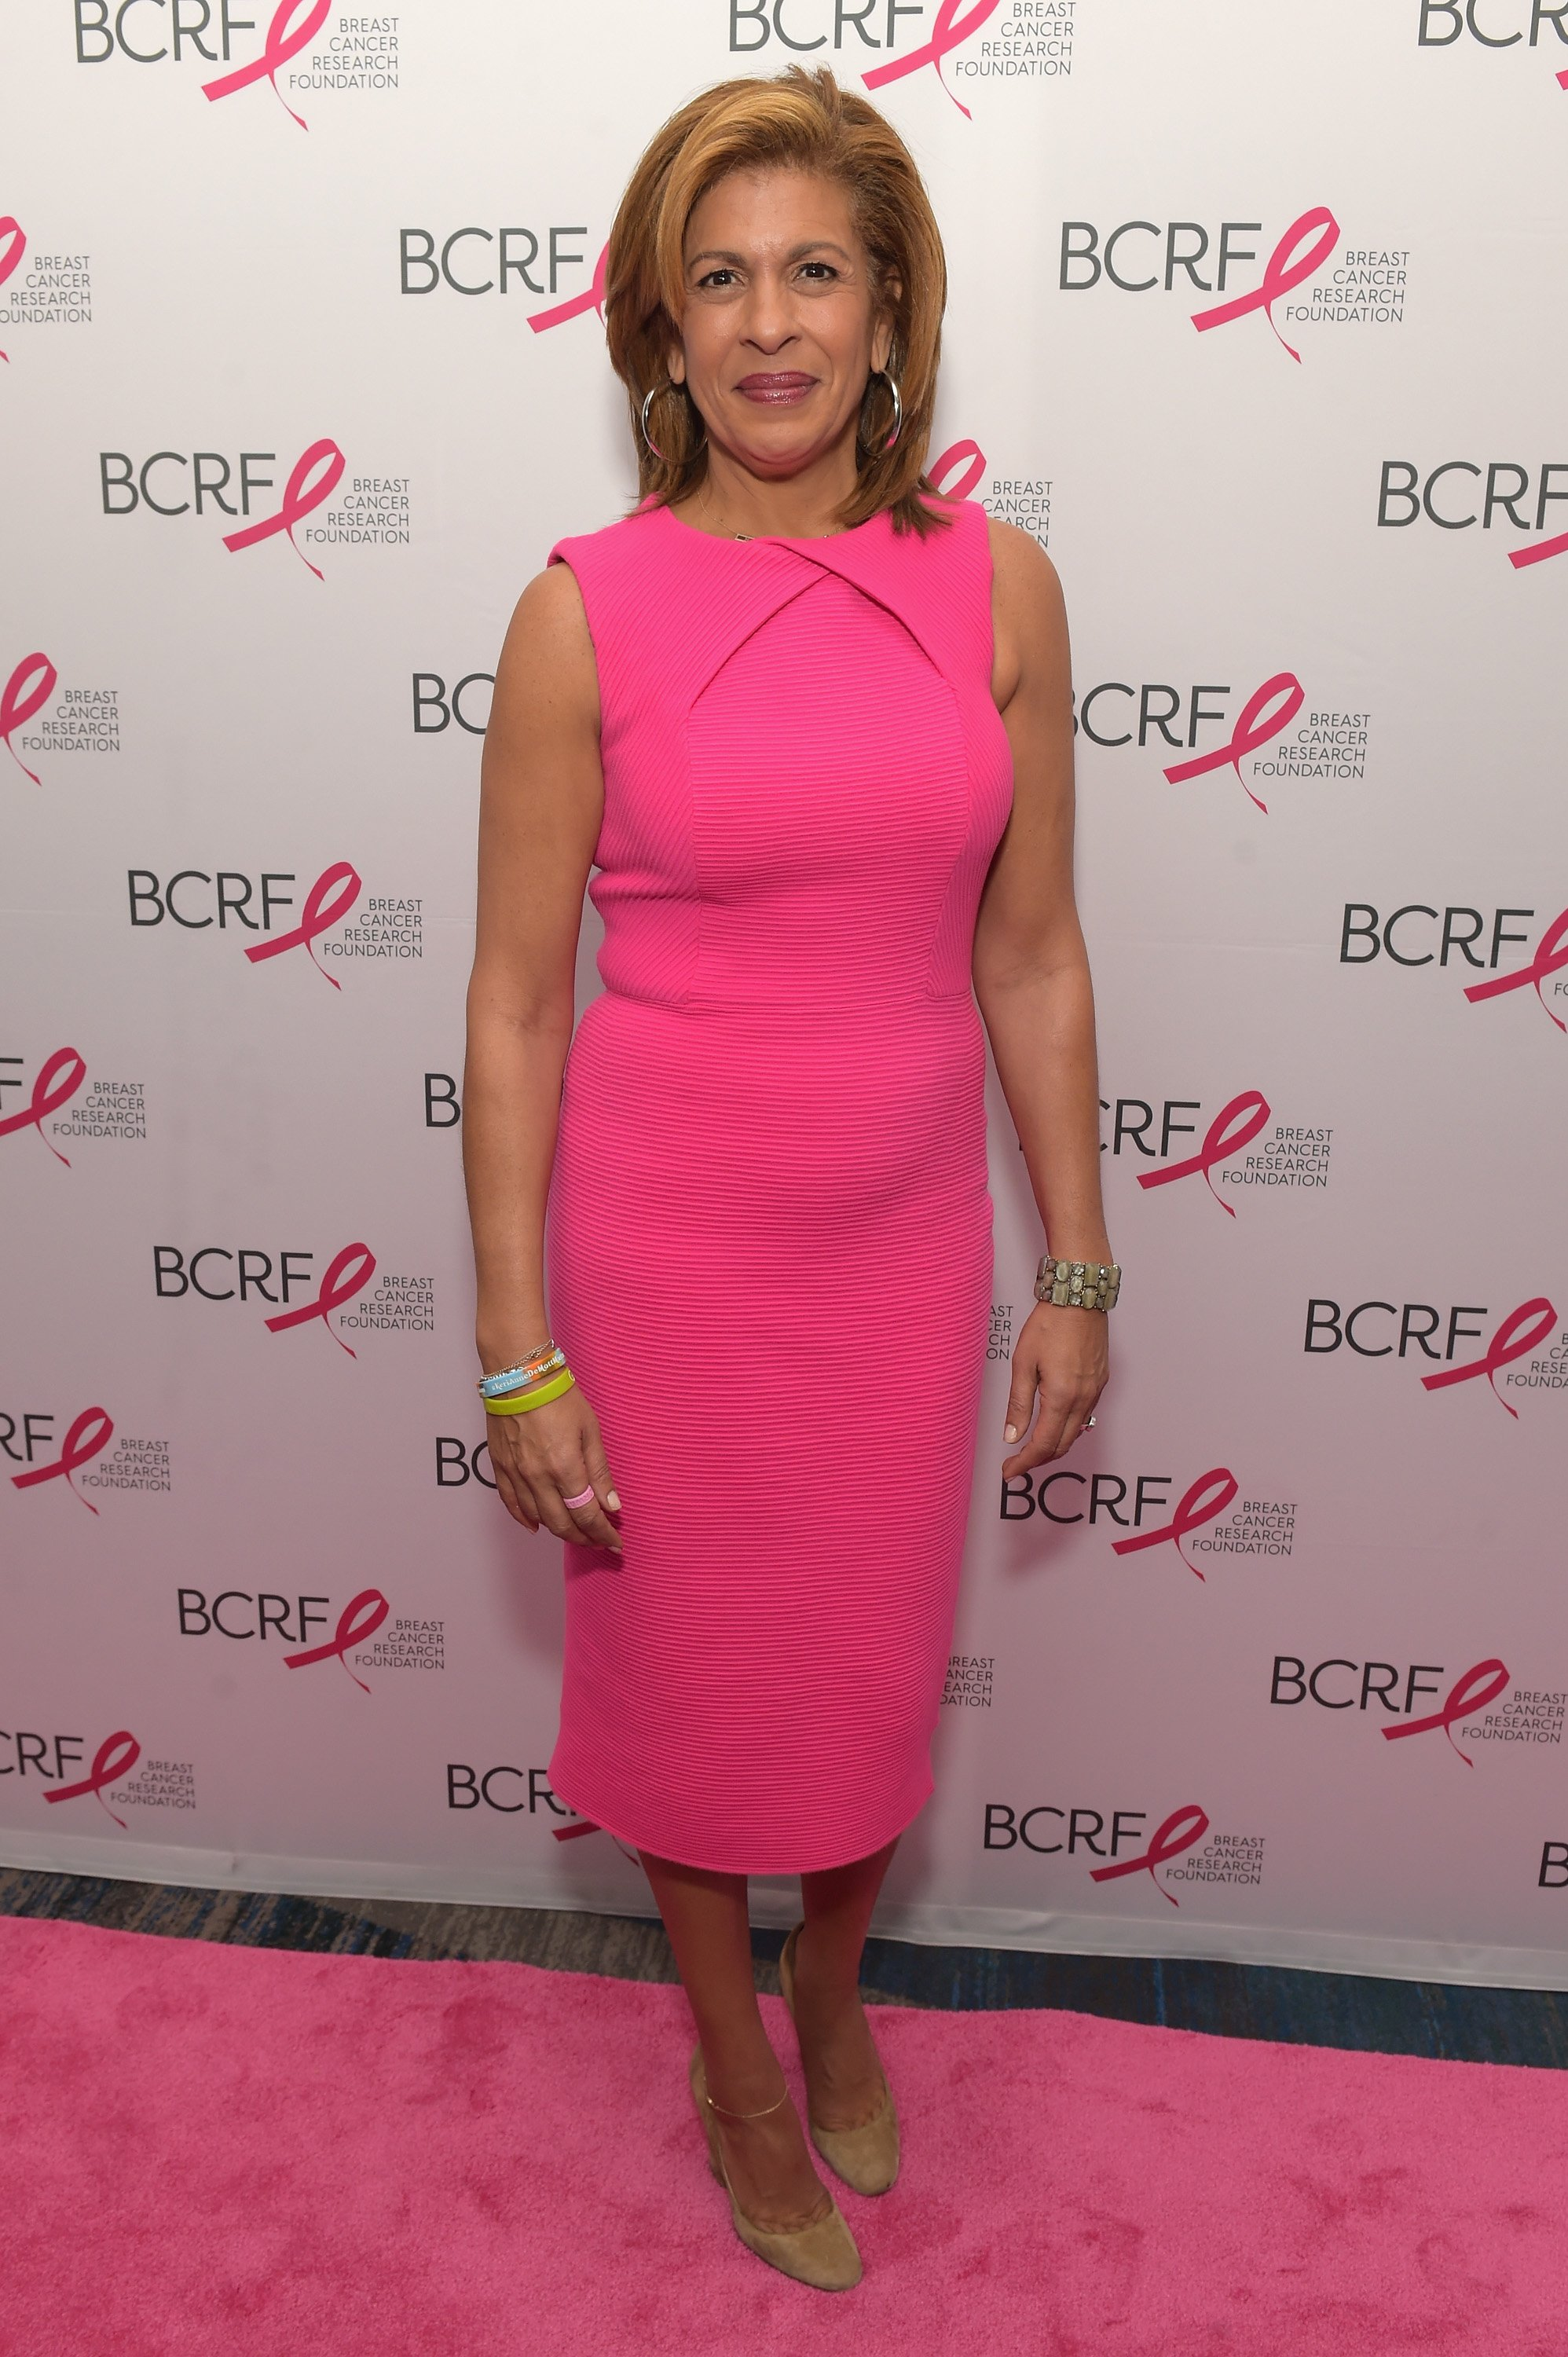 Hoda Kotb attends the Breast Cancer Research Foundation New York Symposium and Awards Luncheon  in New York City on October 19, 2017 | Photo: Getty Images